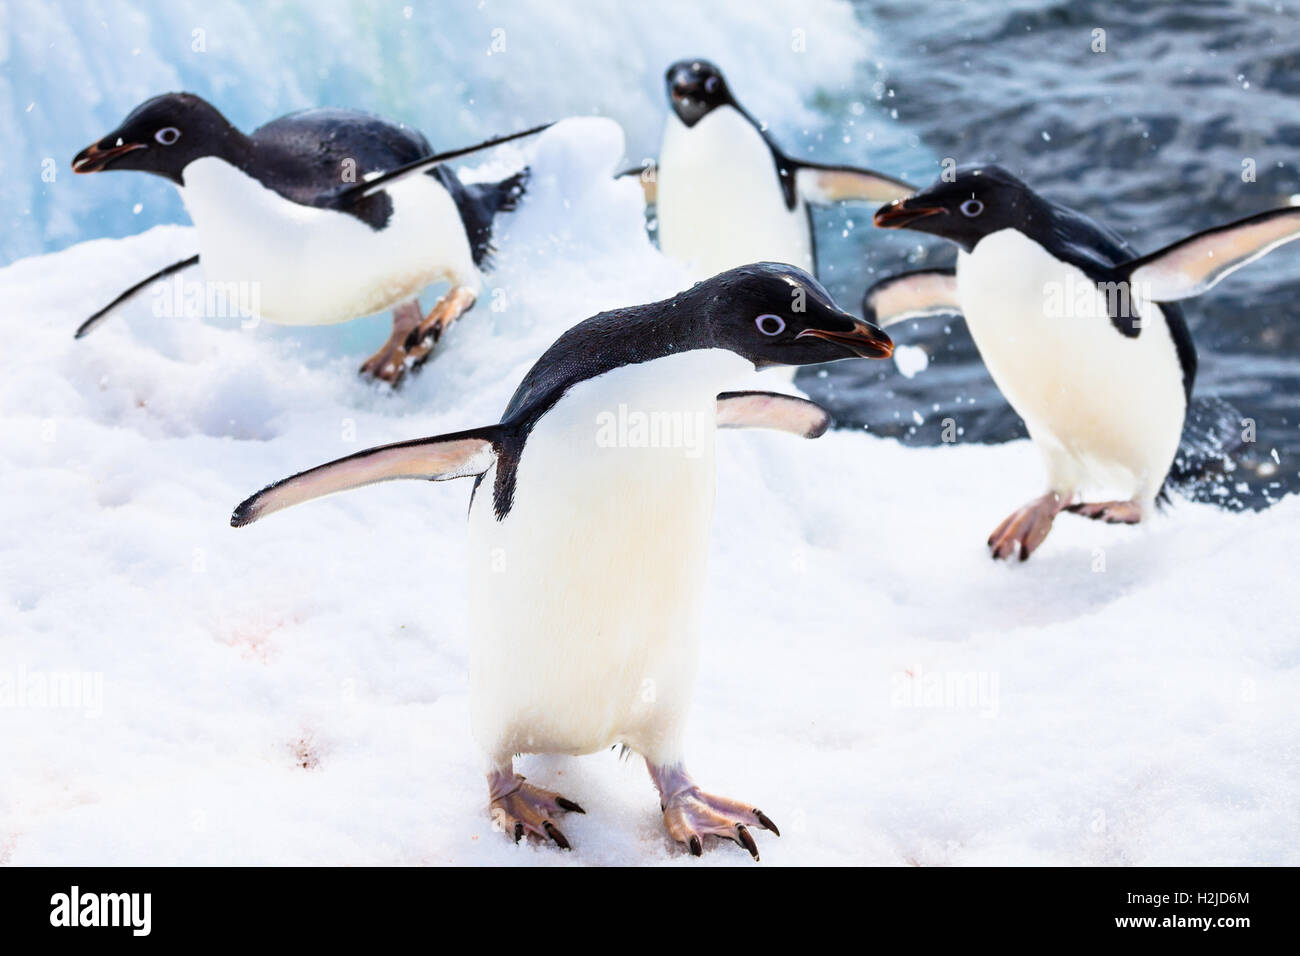 Several Adelie penguins, returning from the water, pop out on to the snow, Antarctica - Stock Image